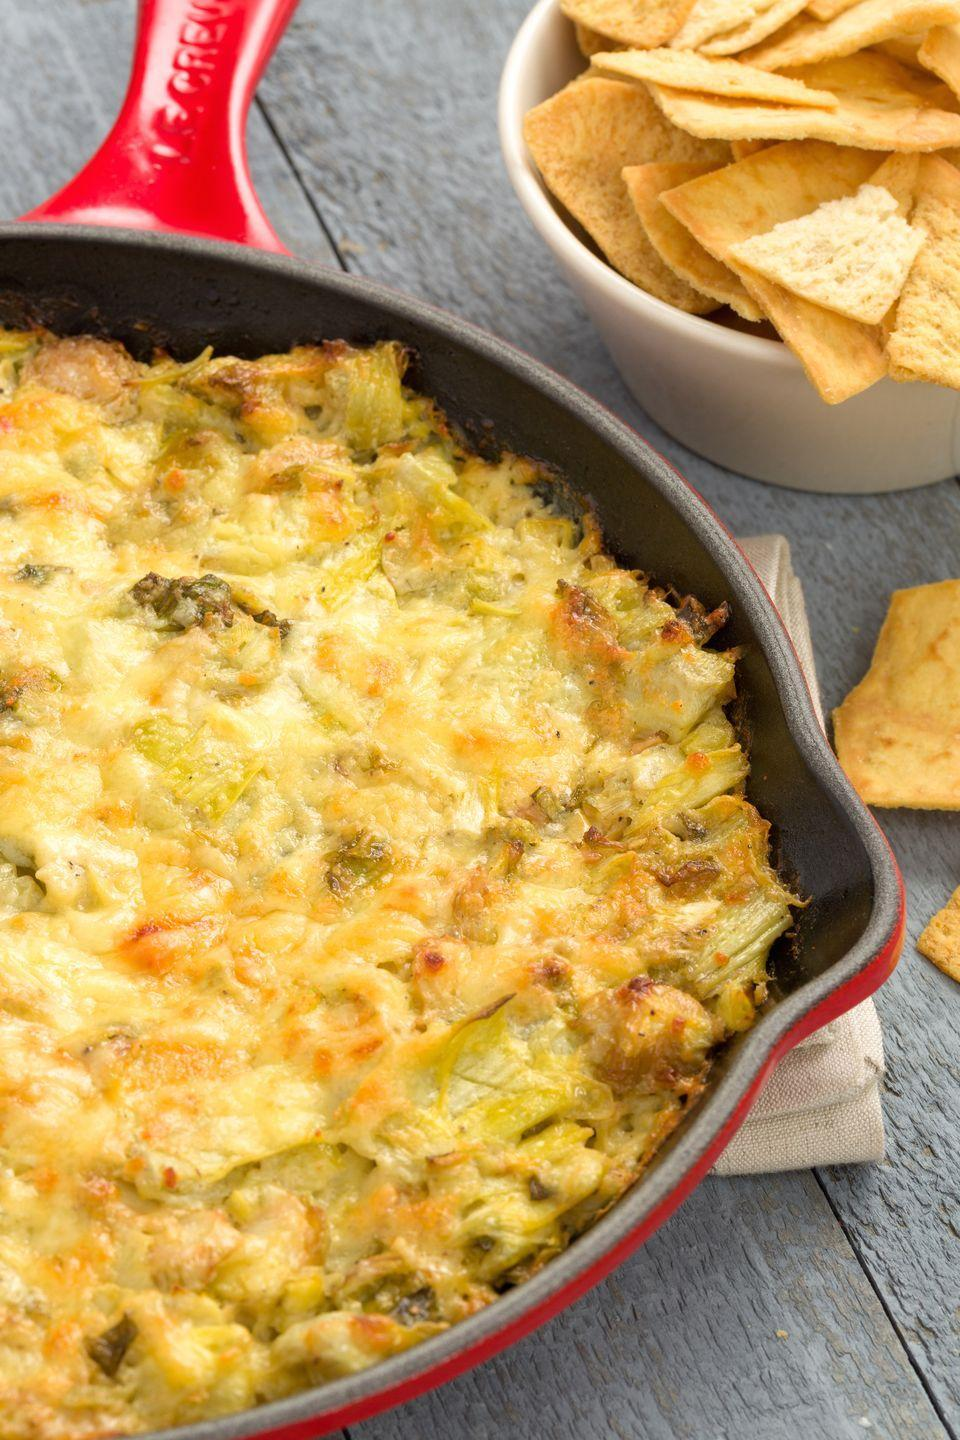 "<p>Replace spinach with brussels sprouts and you've taken your basic dip to the next level.</p><p>Get the recipe from <a href=""/holiday-recipes/thanksgiving/recipes/a44805/cheesy-brussels-sprout-artichoke-dip-recipe/"" data-ylk=""slk:Delish"" class=""link rapid-noclick-resp"">Delish</a>.</p>"